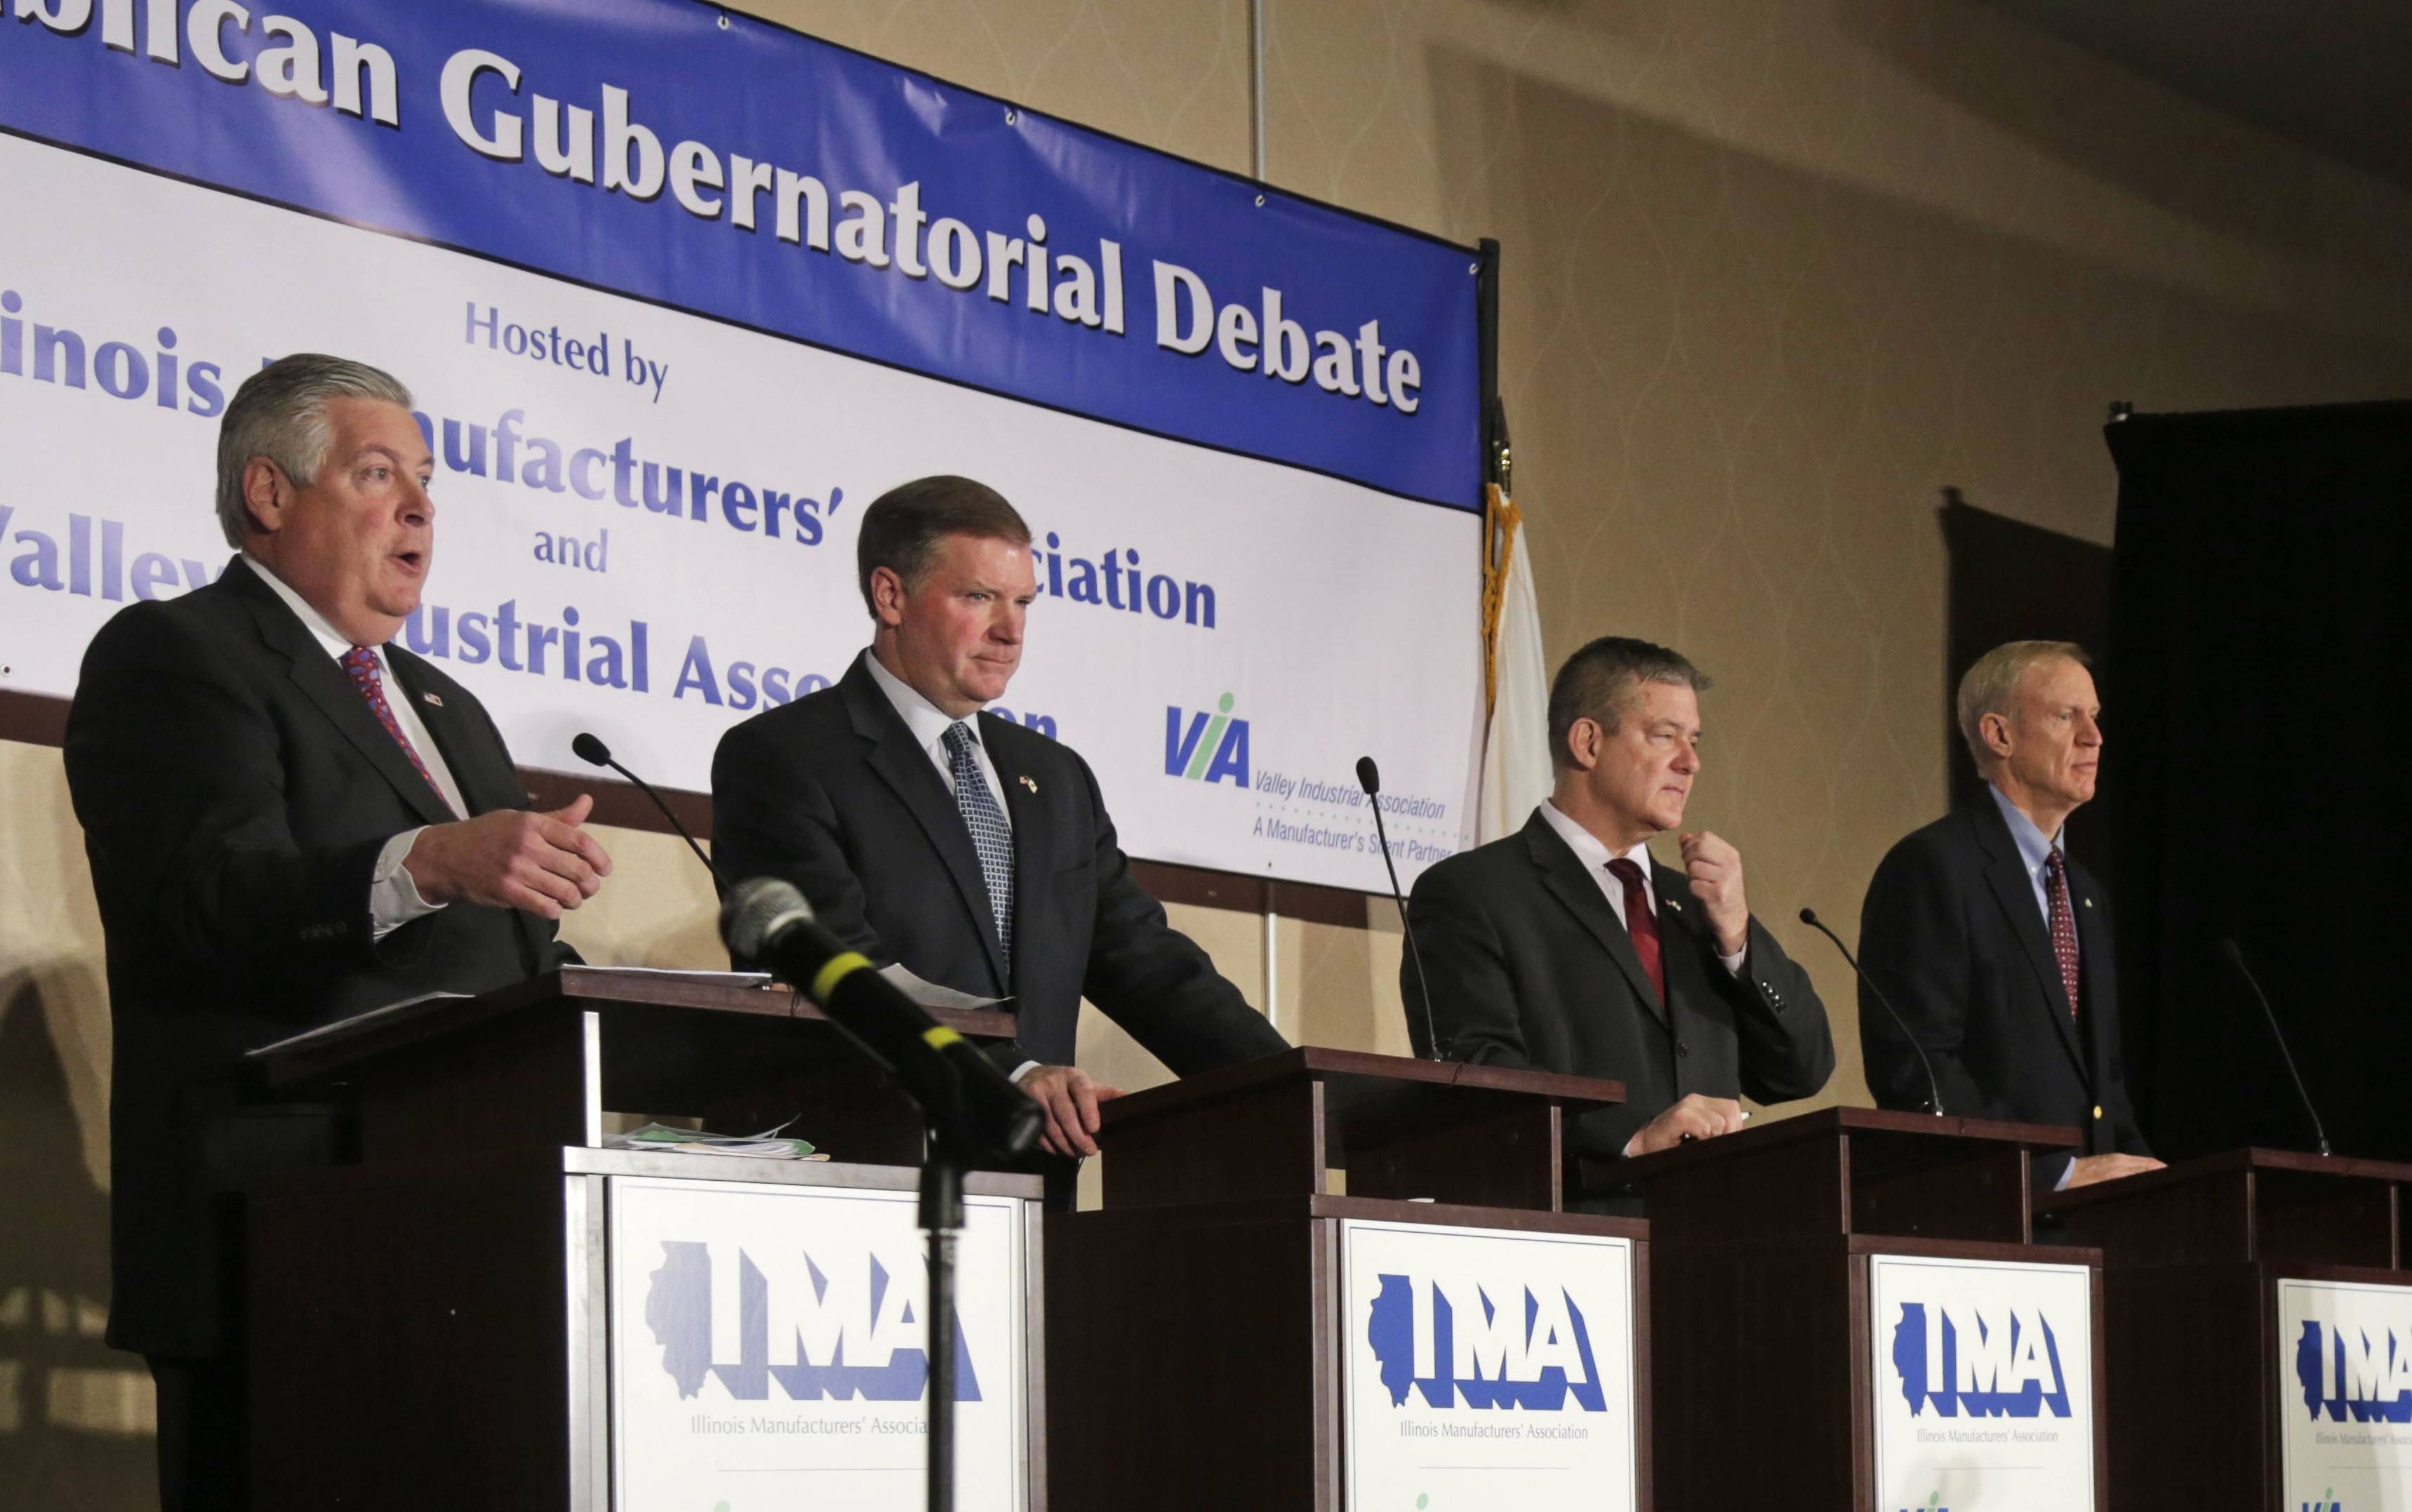 GOP hopefuls agree prison fixes are elusive